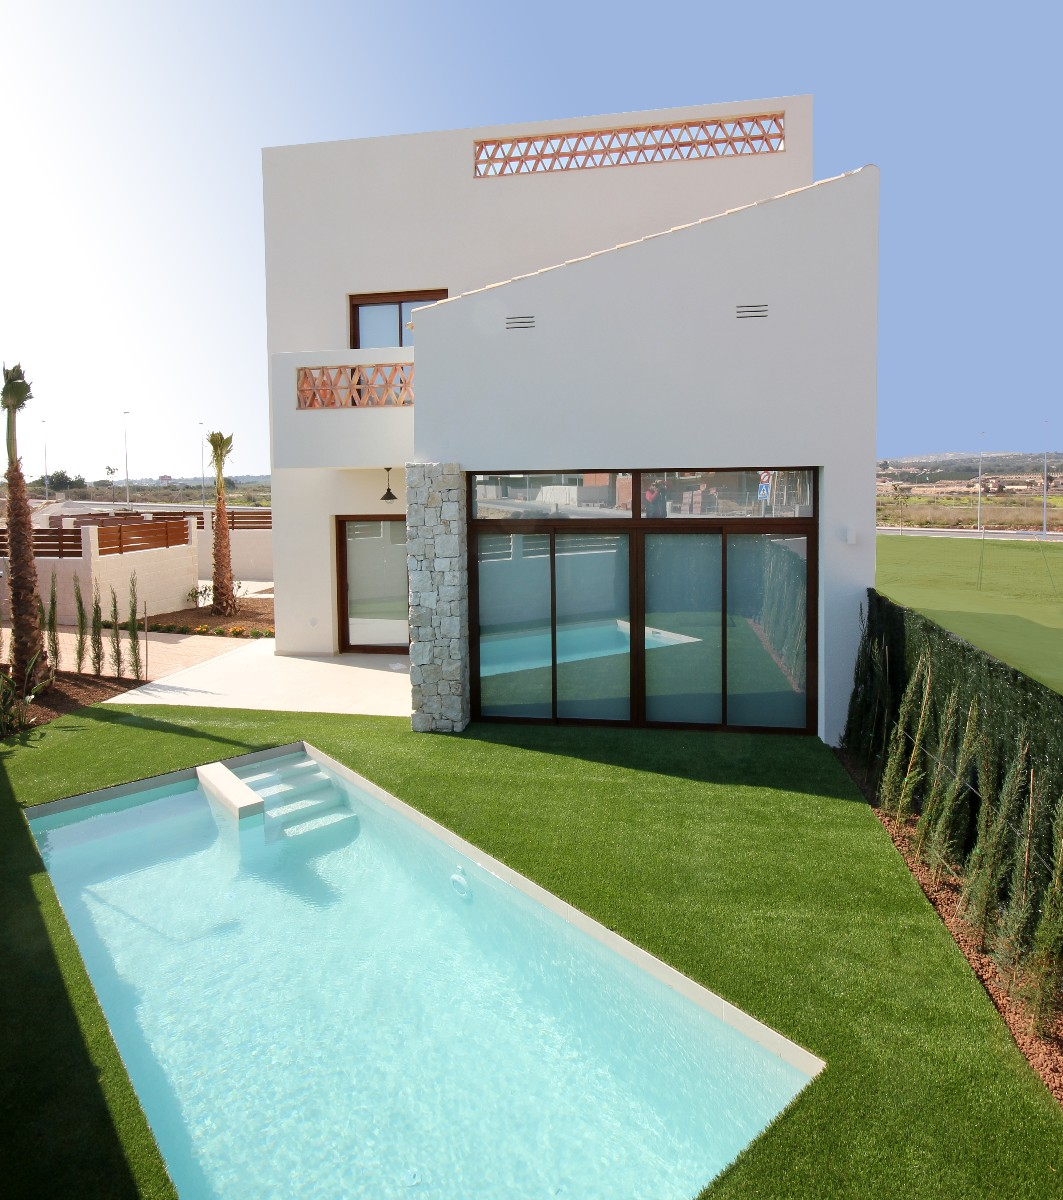 Propery For Sale in Benijofar, Spain image 6